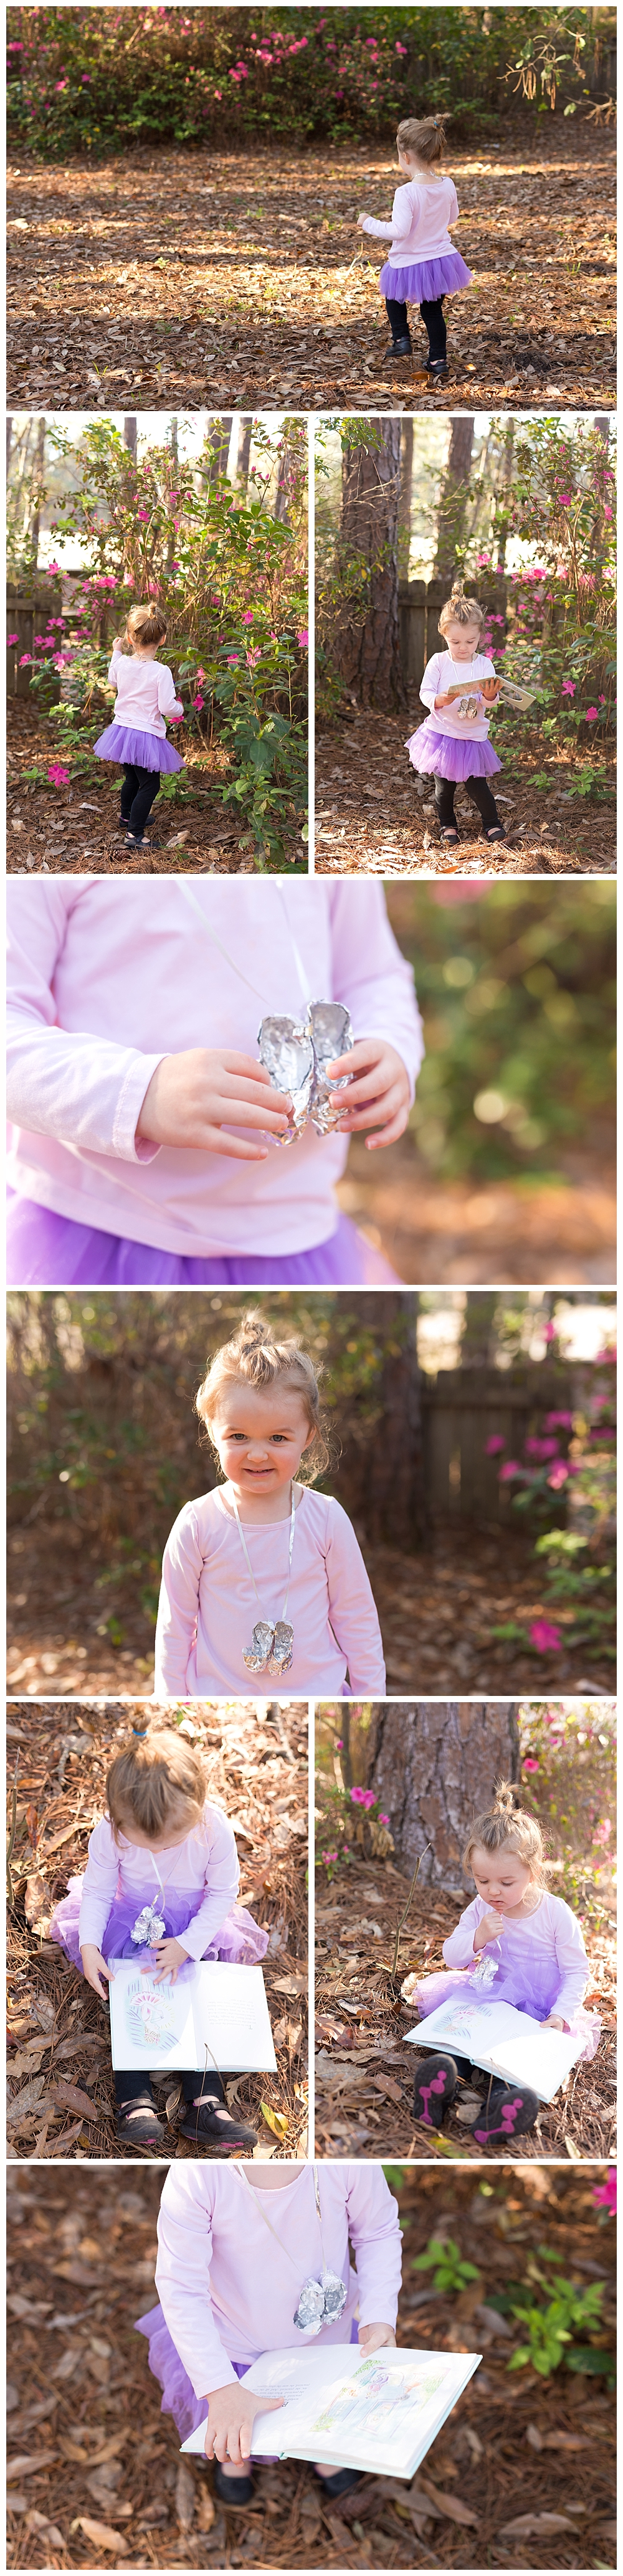 easy costume for Read Across America Day - The Silver Slippers necklace craft